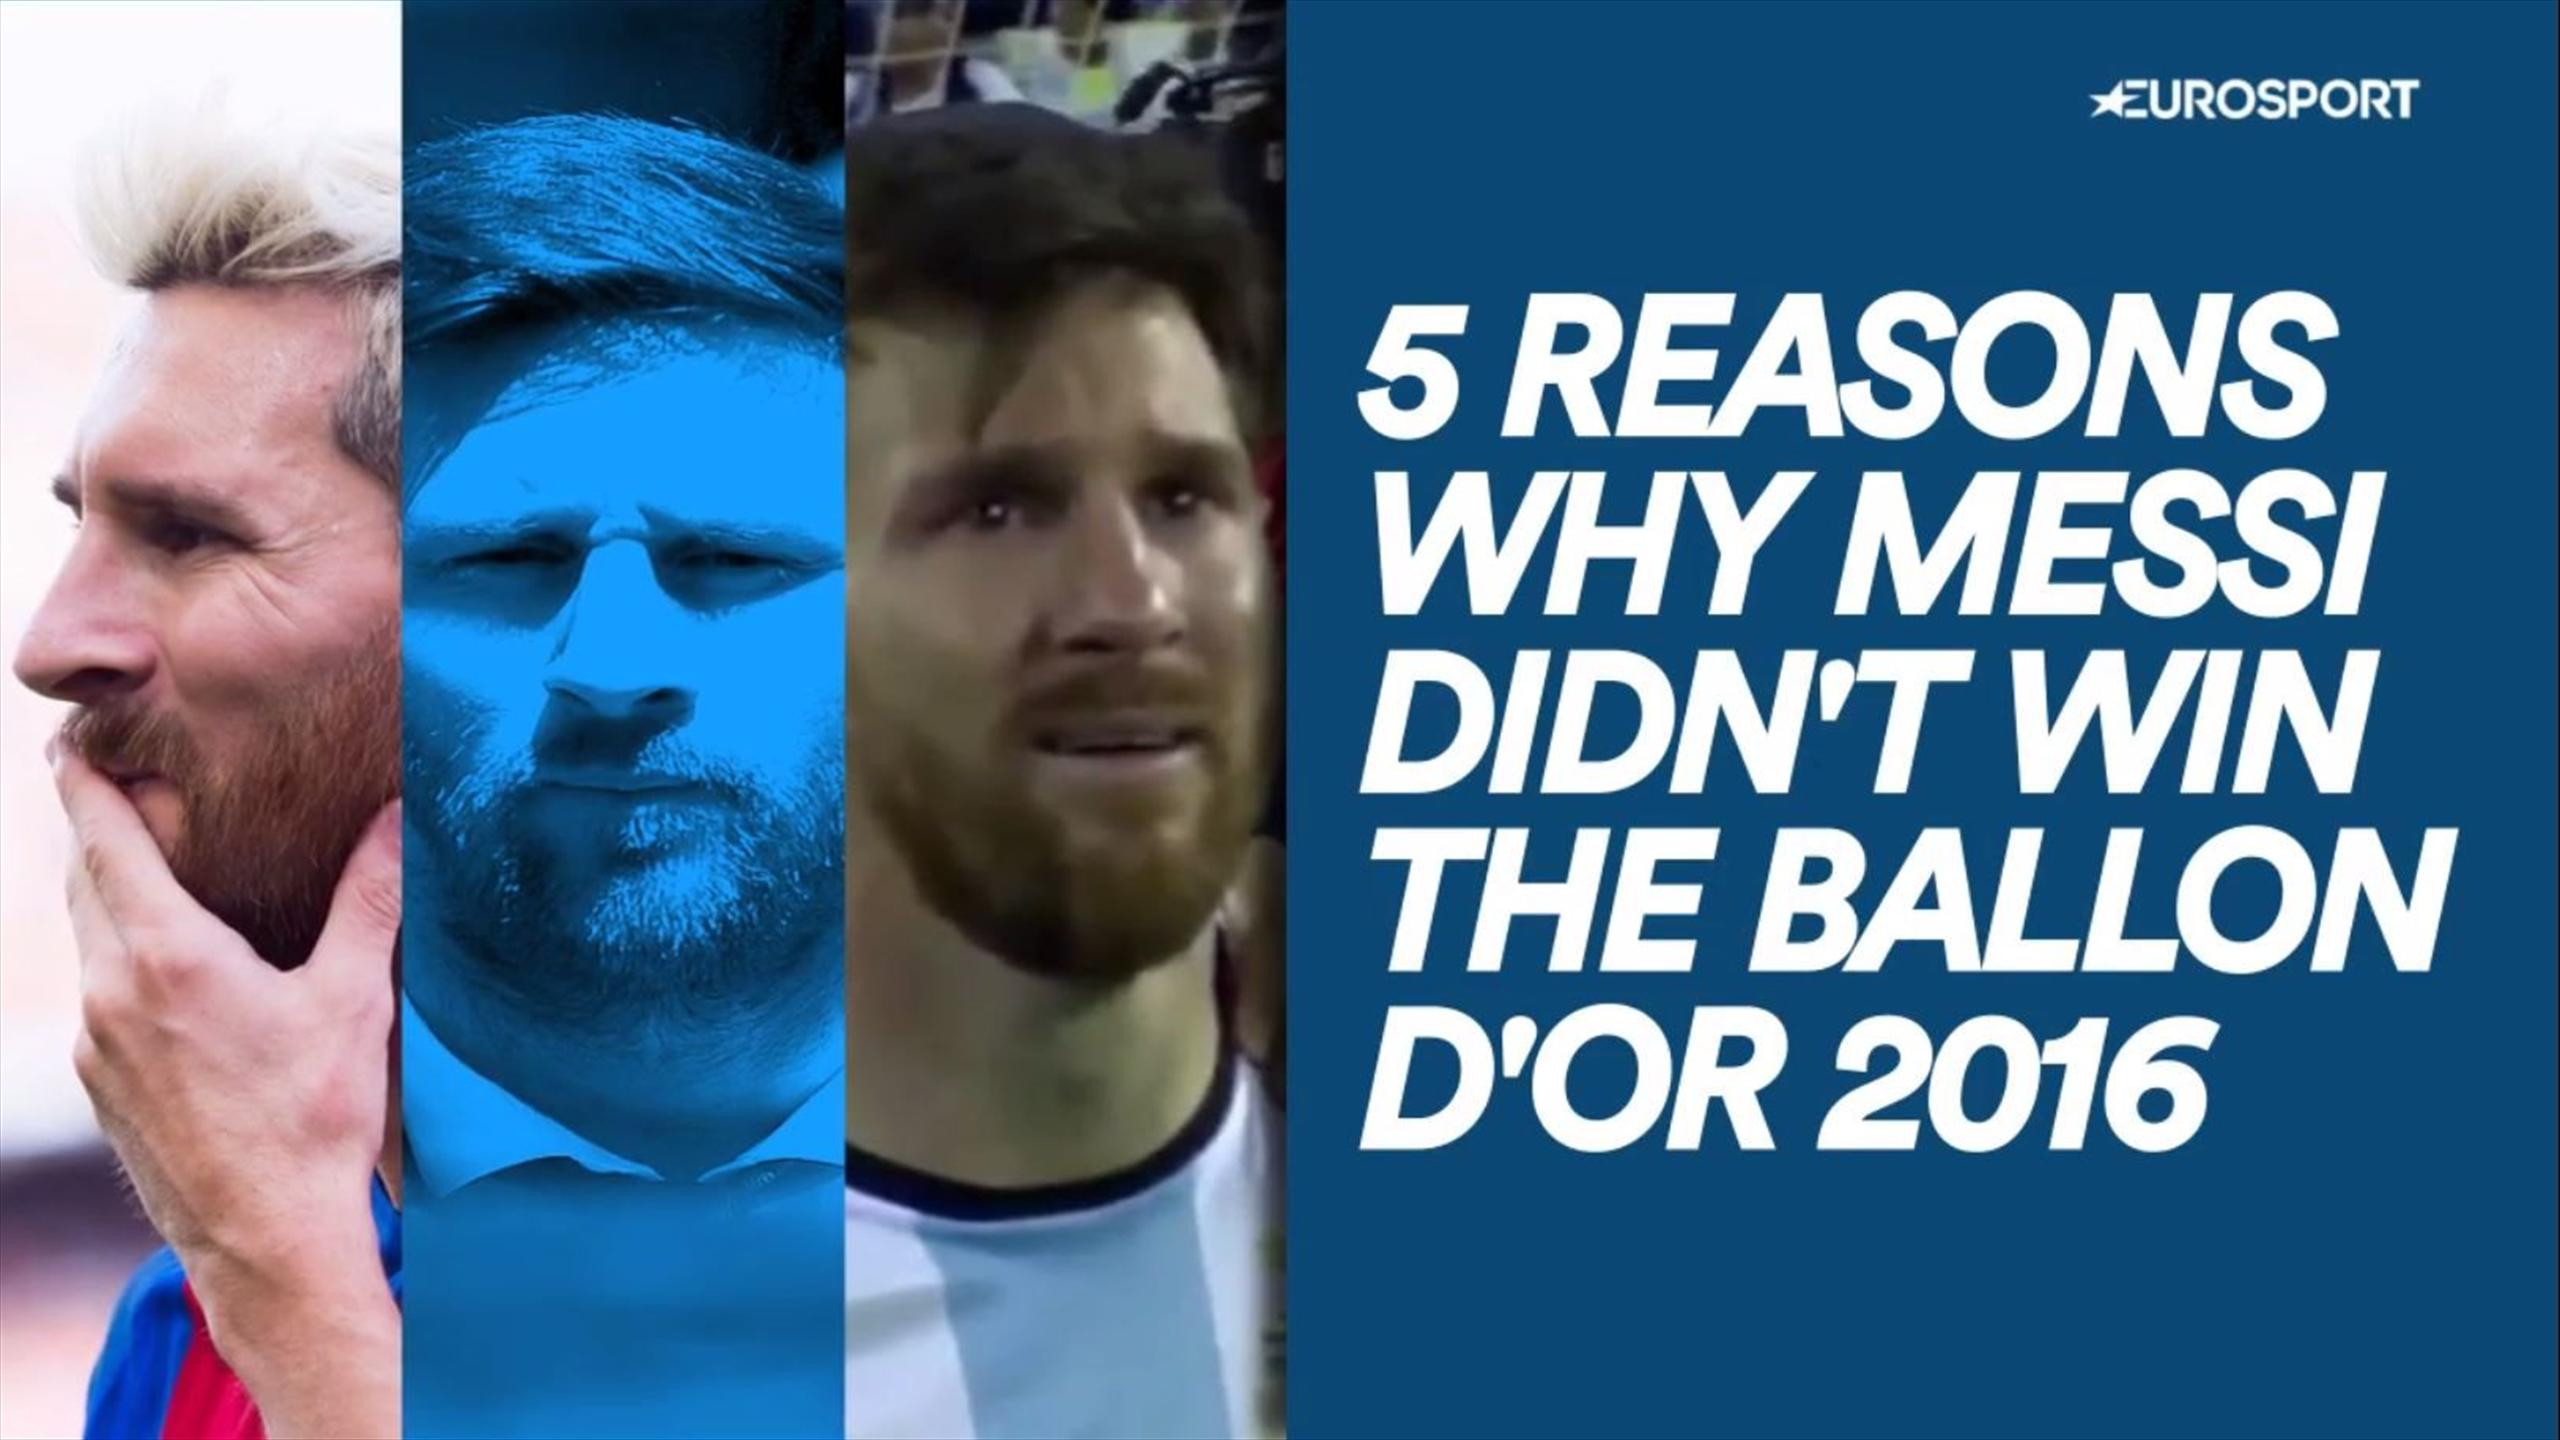 5 Reasons why Messi didn't win the 2016 Ballon d'Or